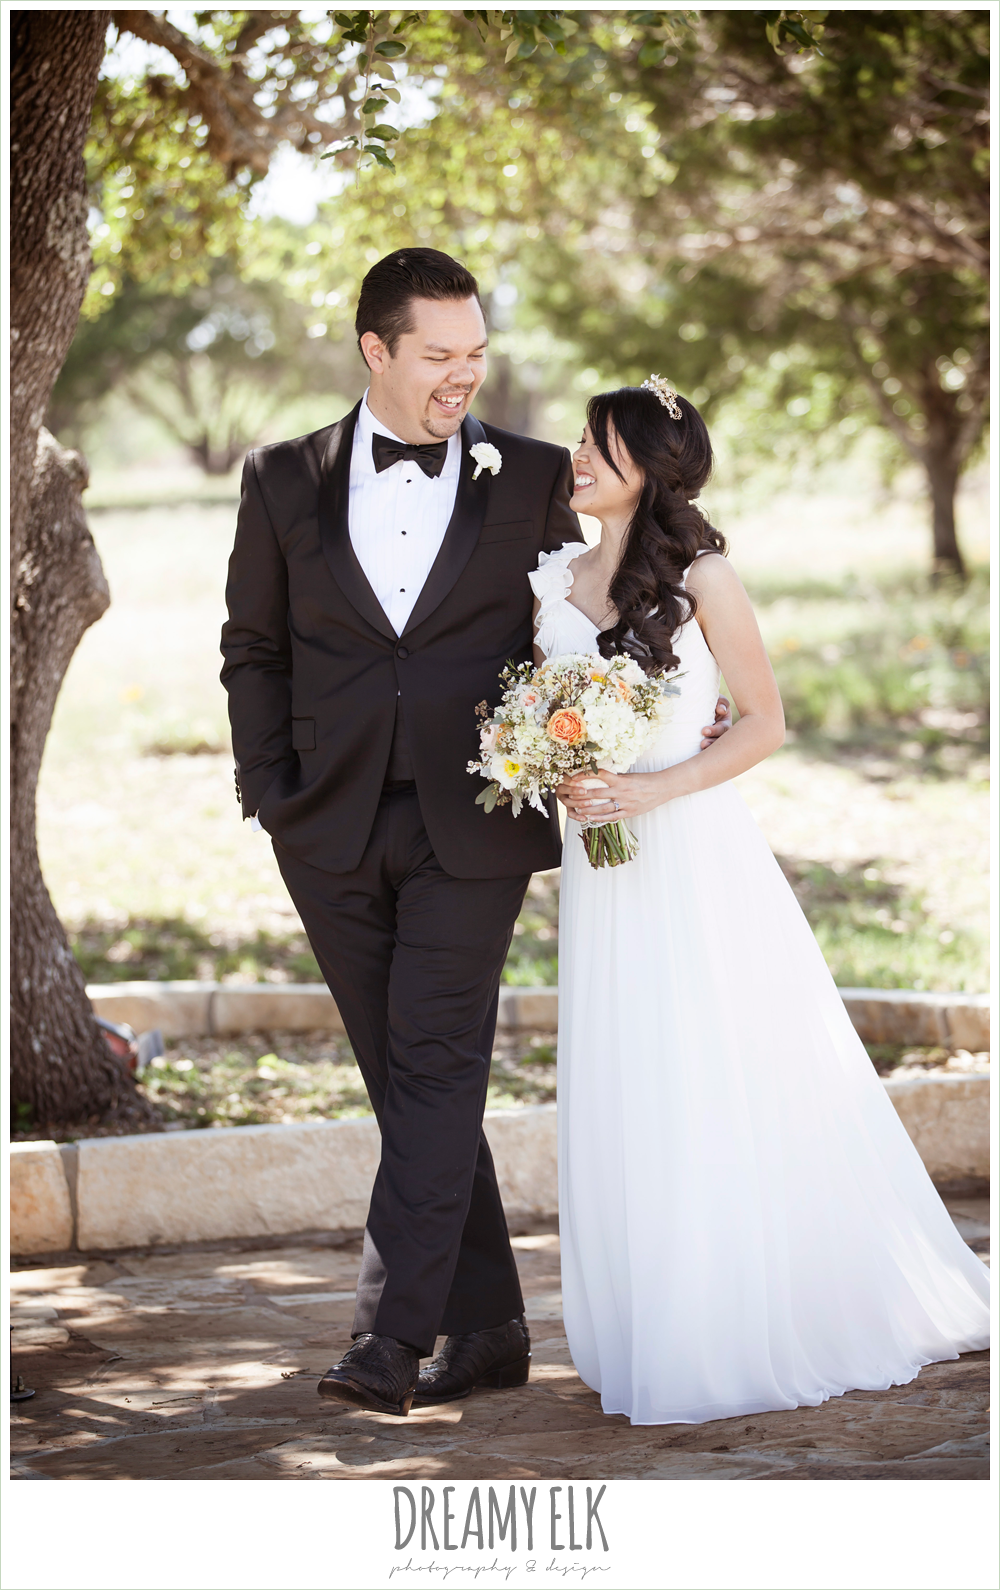 bride and groom walking, groom in tuxedo, chiffon wedding dress with ruffle sleeve, wedding hair side swept, pink orange and yellow bouquet, wild bunches florist, la hacienda, dripping springs, texas {dreamy elk photography and design} photo